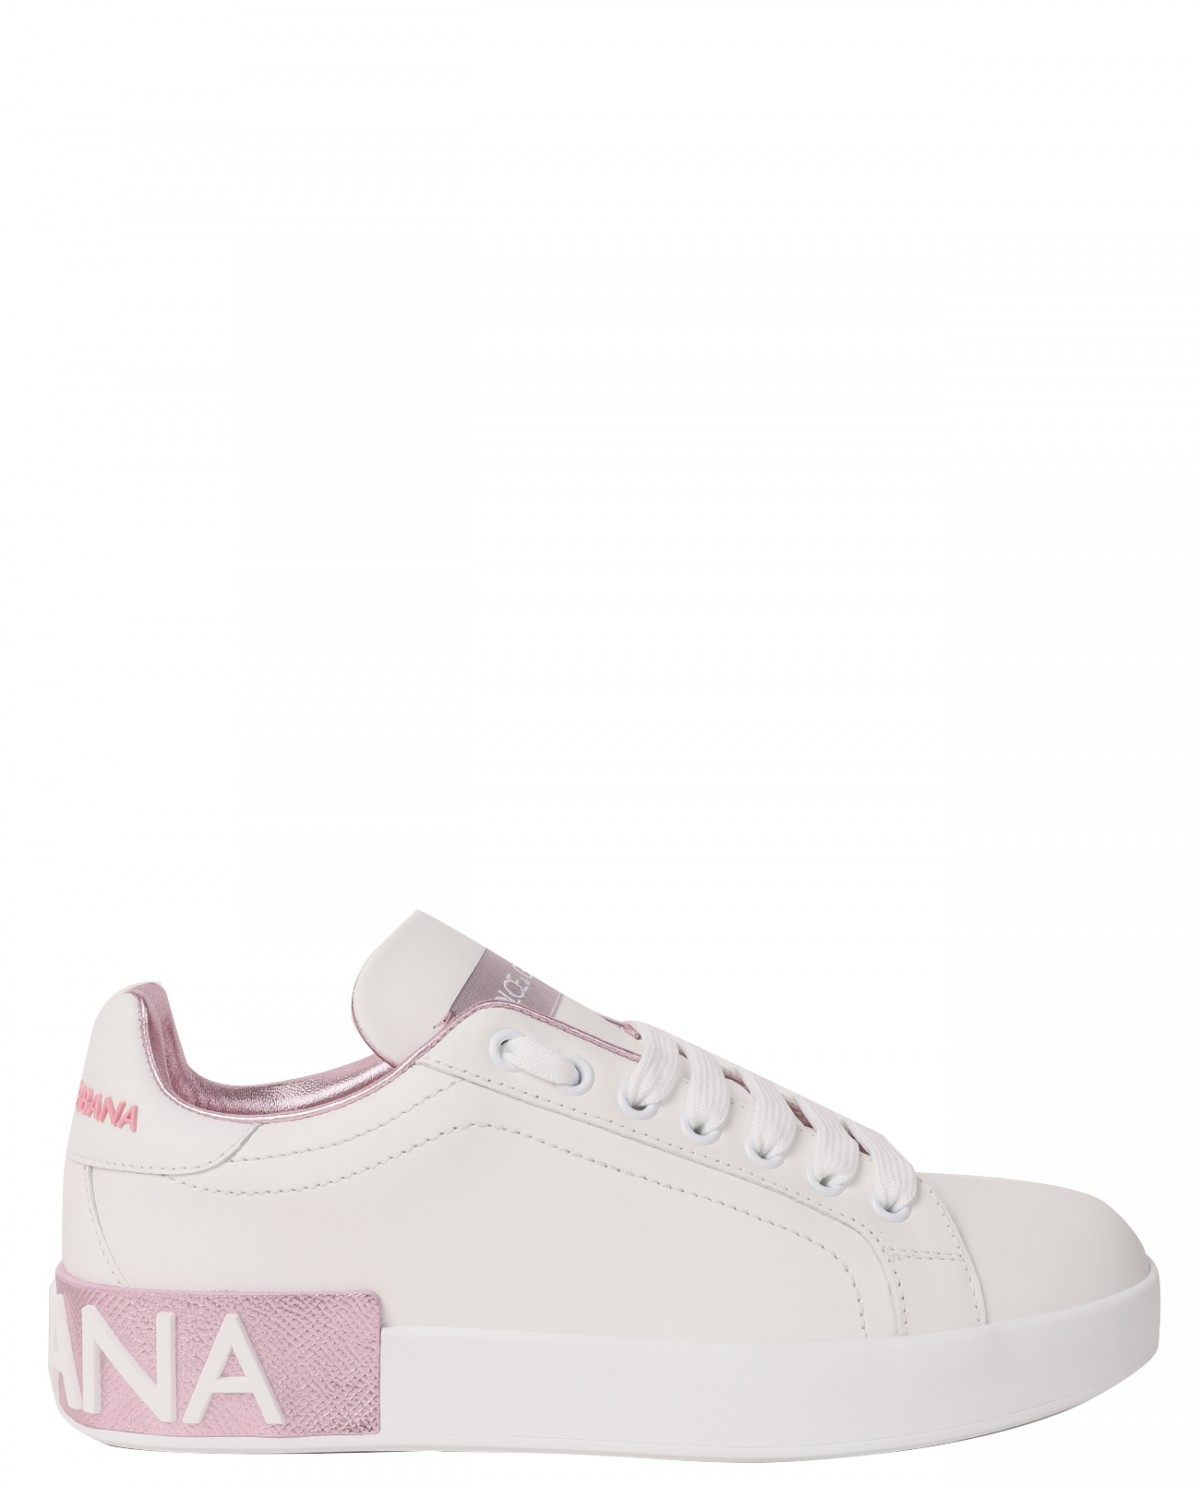 Dolce & Gabbana white and pink...